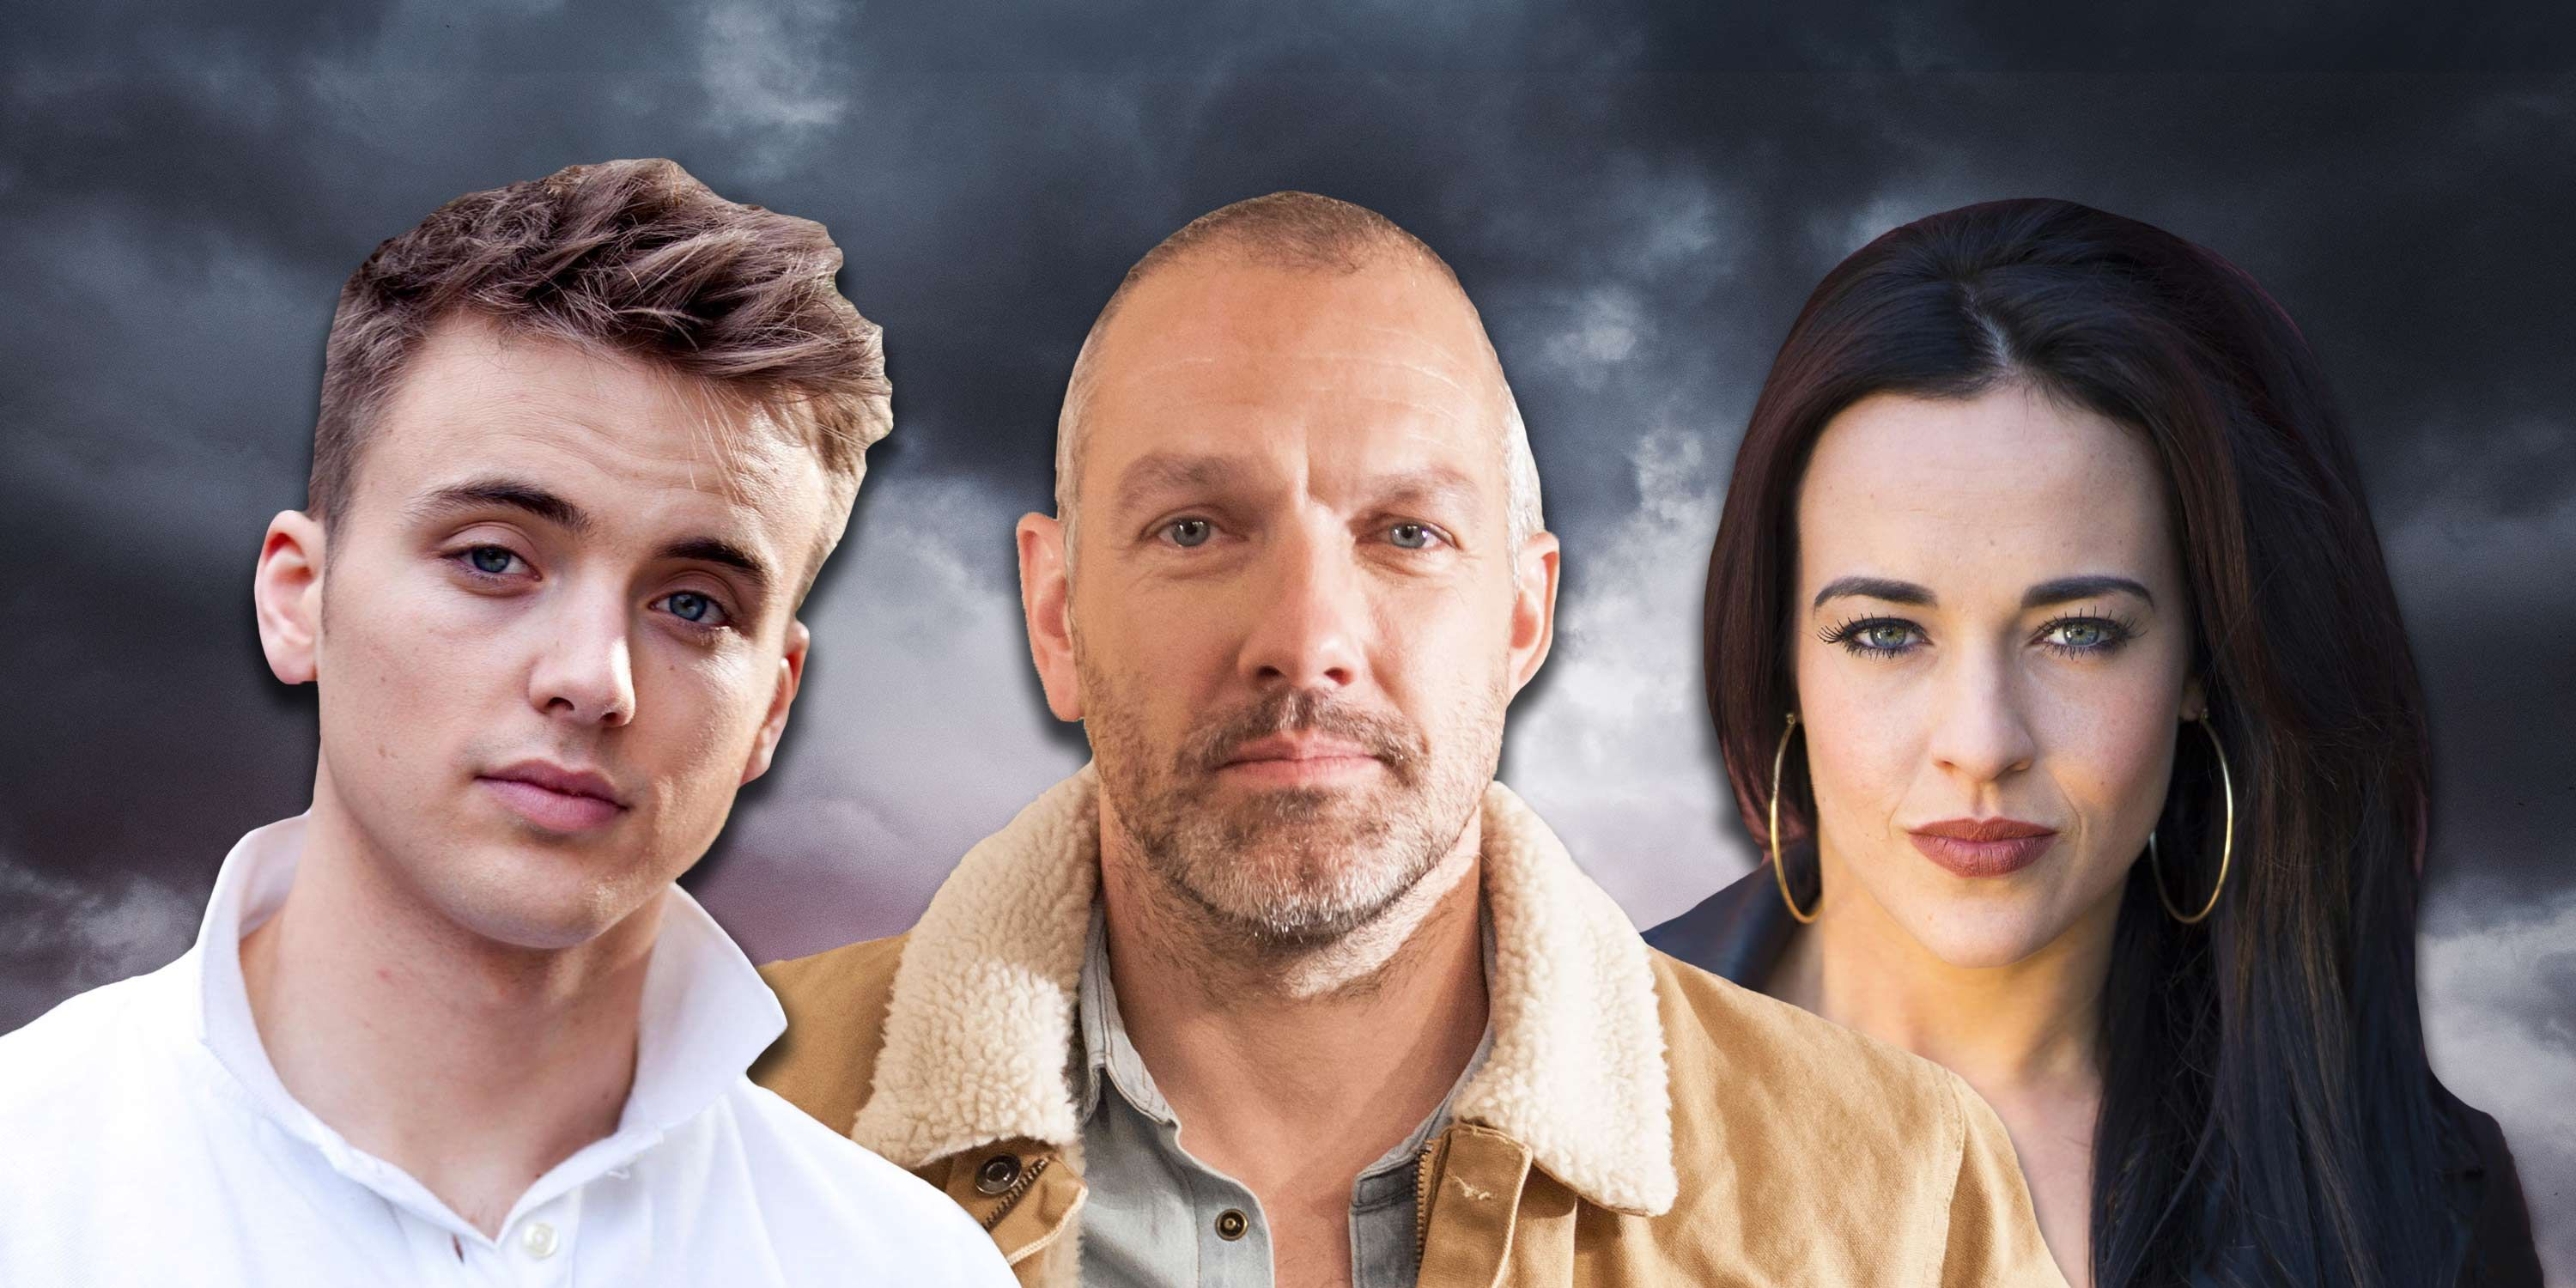 Sinead O'Connor, Glenn Donovan, Harry Thompson, Hollyoaks, Who will die in the storm?